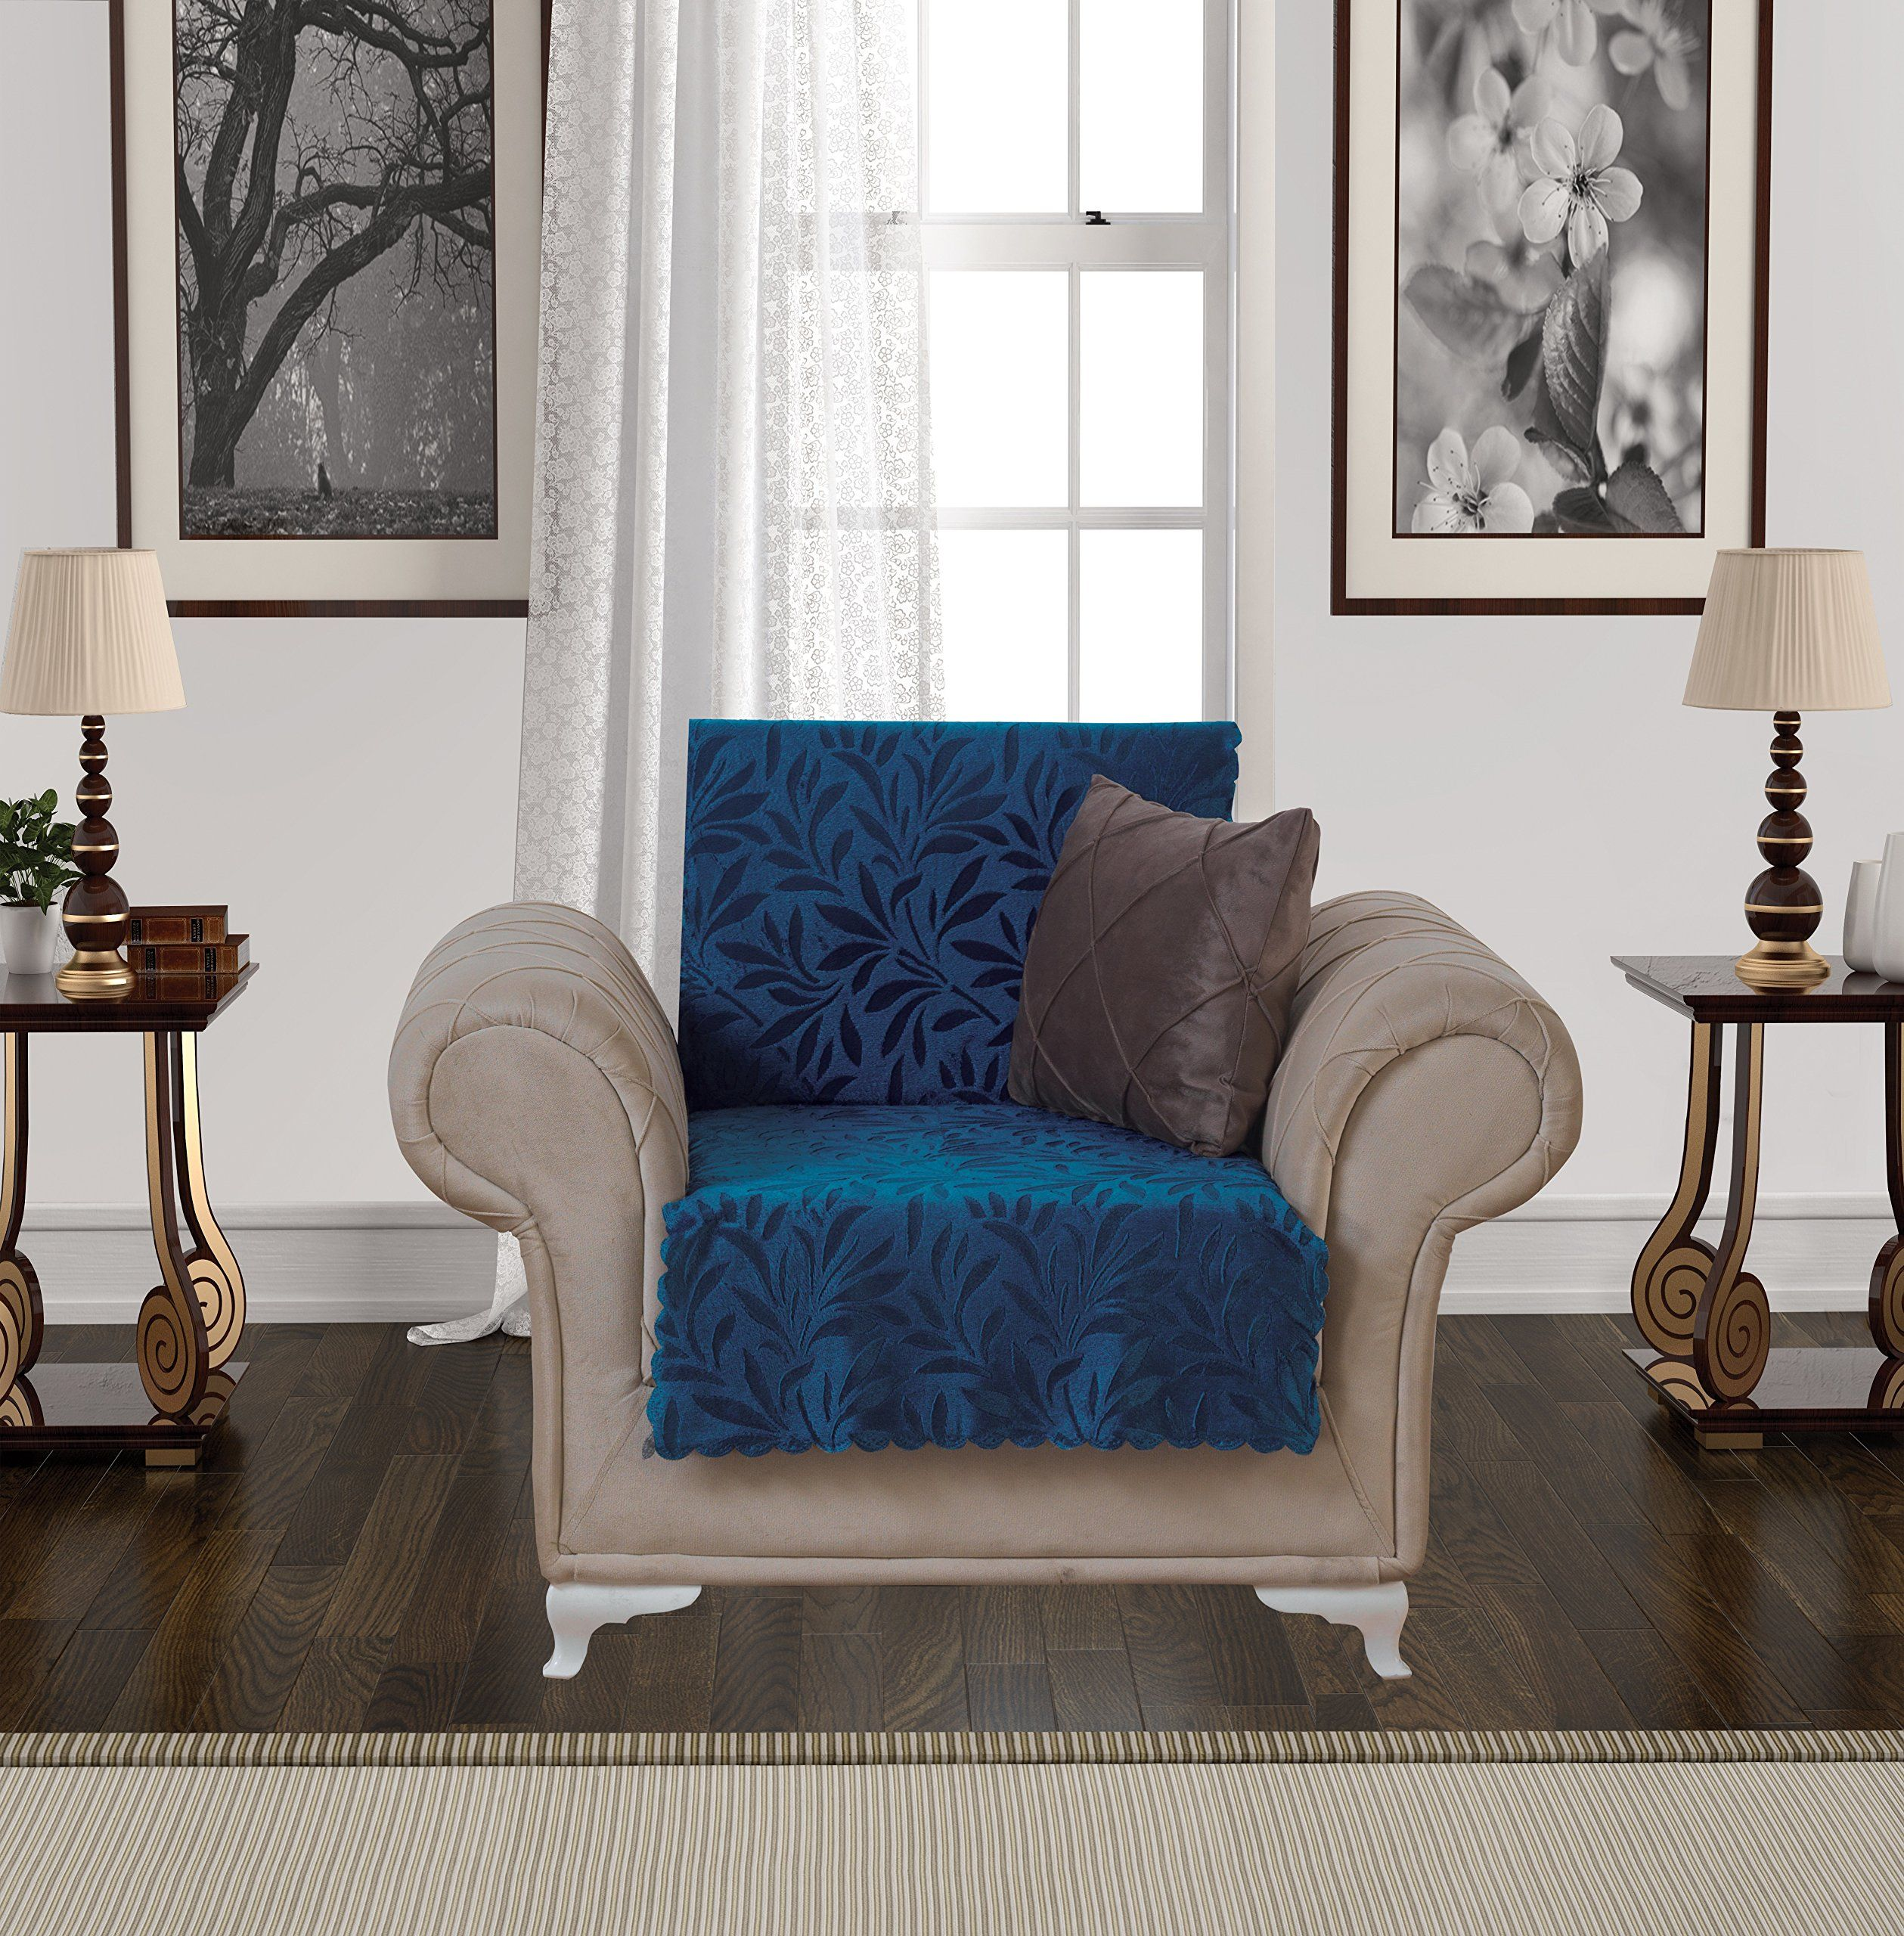 Pin on Slipcovers